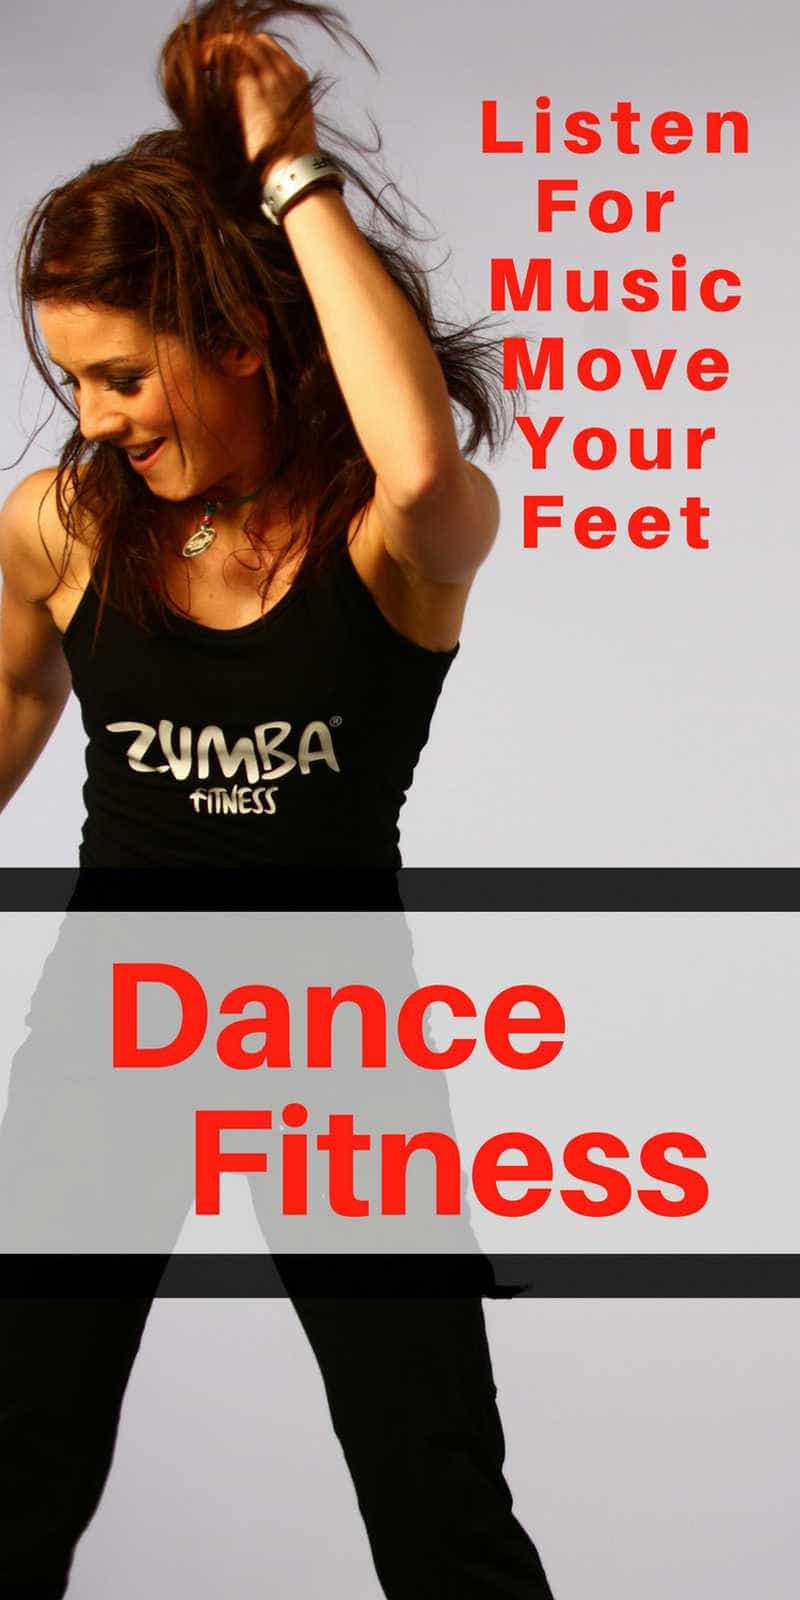 11 Dance Fitness Styles for Fun and Weight Loss | Listen For The Music & Dance Your Inches Away | Excercise  | Excercise Motivation | Excercise Ball Workout | Excercise For Beginners | Excercise Motivation for Women | For Beginners At Home | For Beginners Gym | For Beginners Belly | For Beginners Over 50 | Excercise Ball Workout For Men | Excercise Ball Workout For Beginners | Excercise Ball Workout Muffintop | Muffintop Exercise | Muffintop Challenge | Muffin top Workout | ARoadtoTravel.com